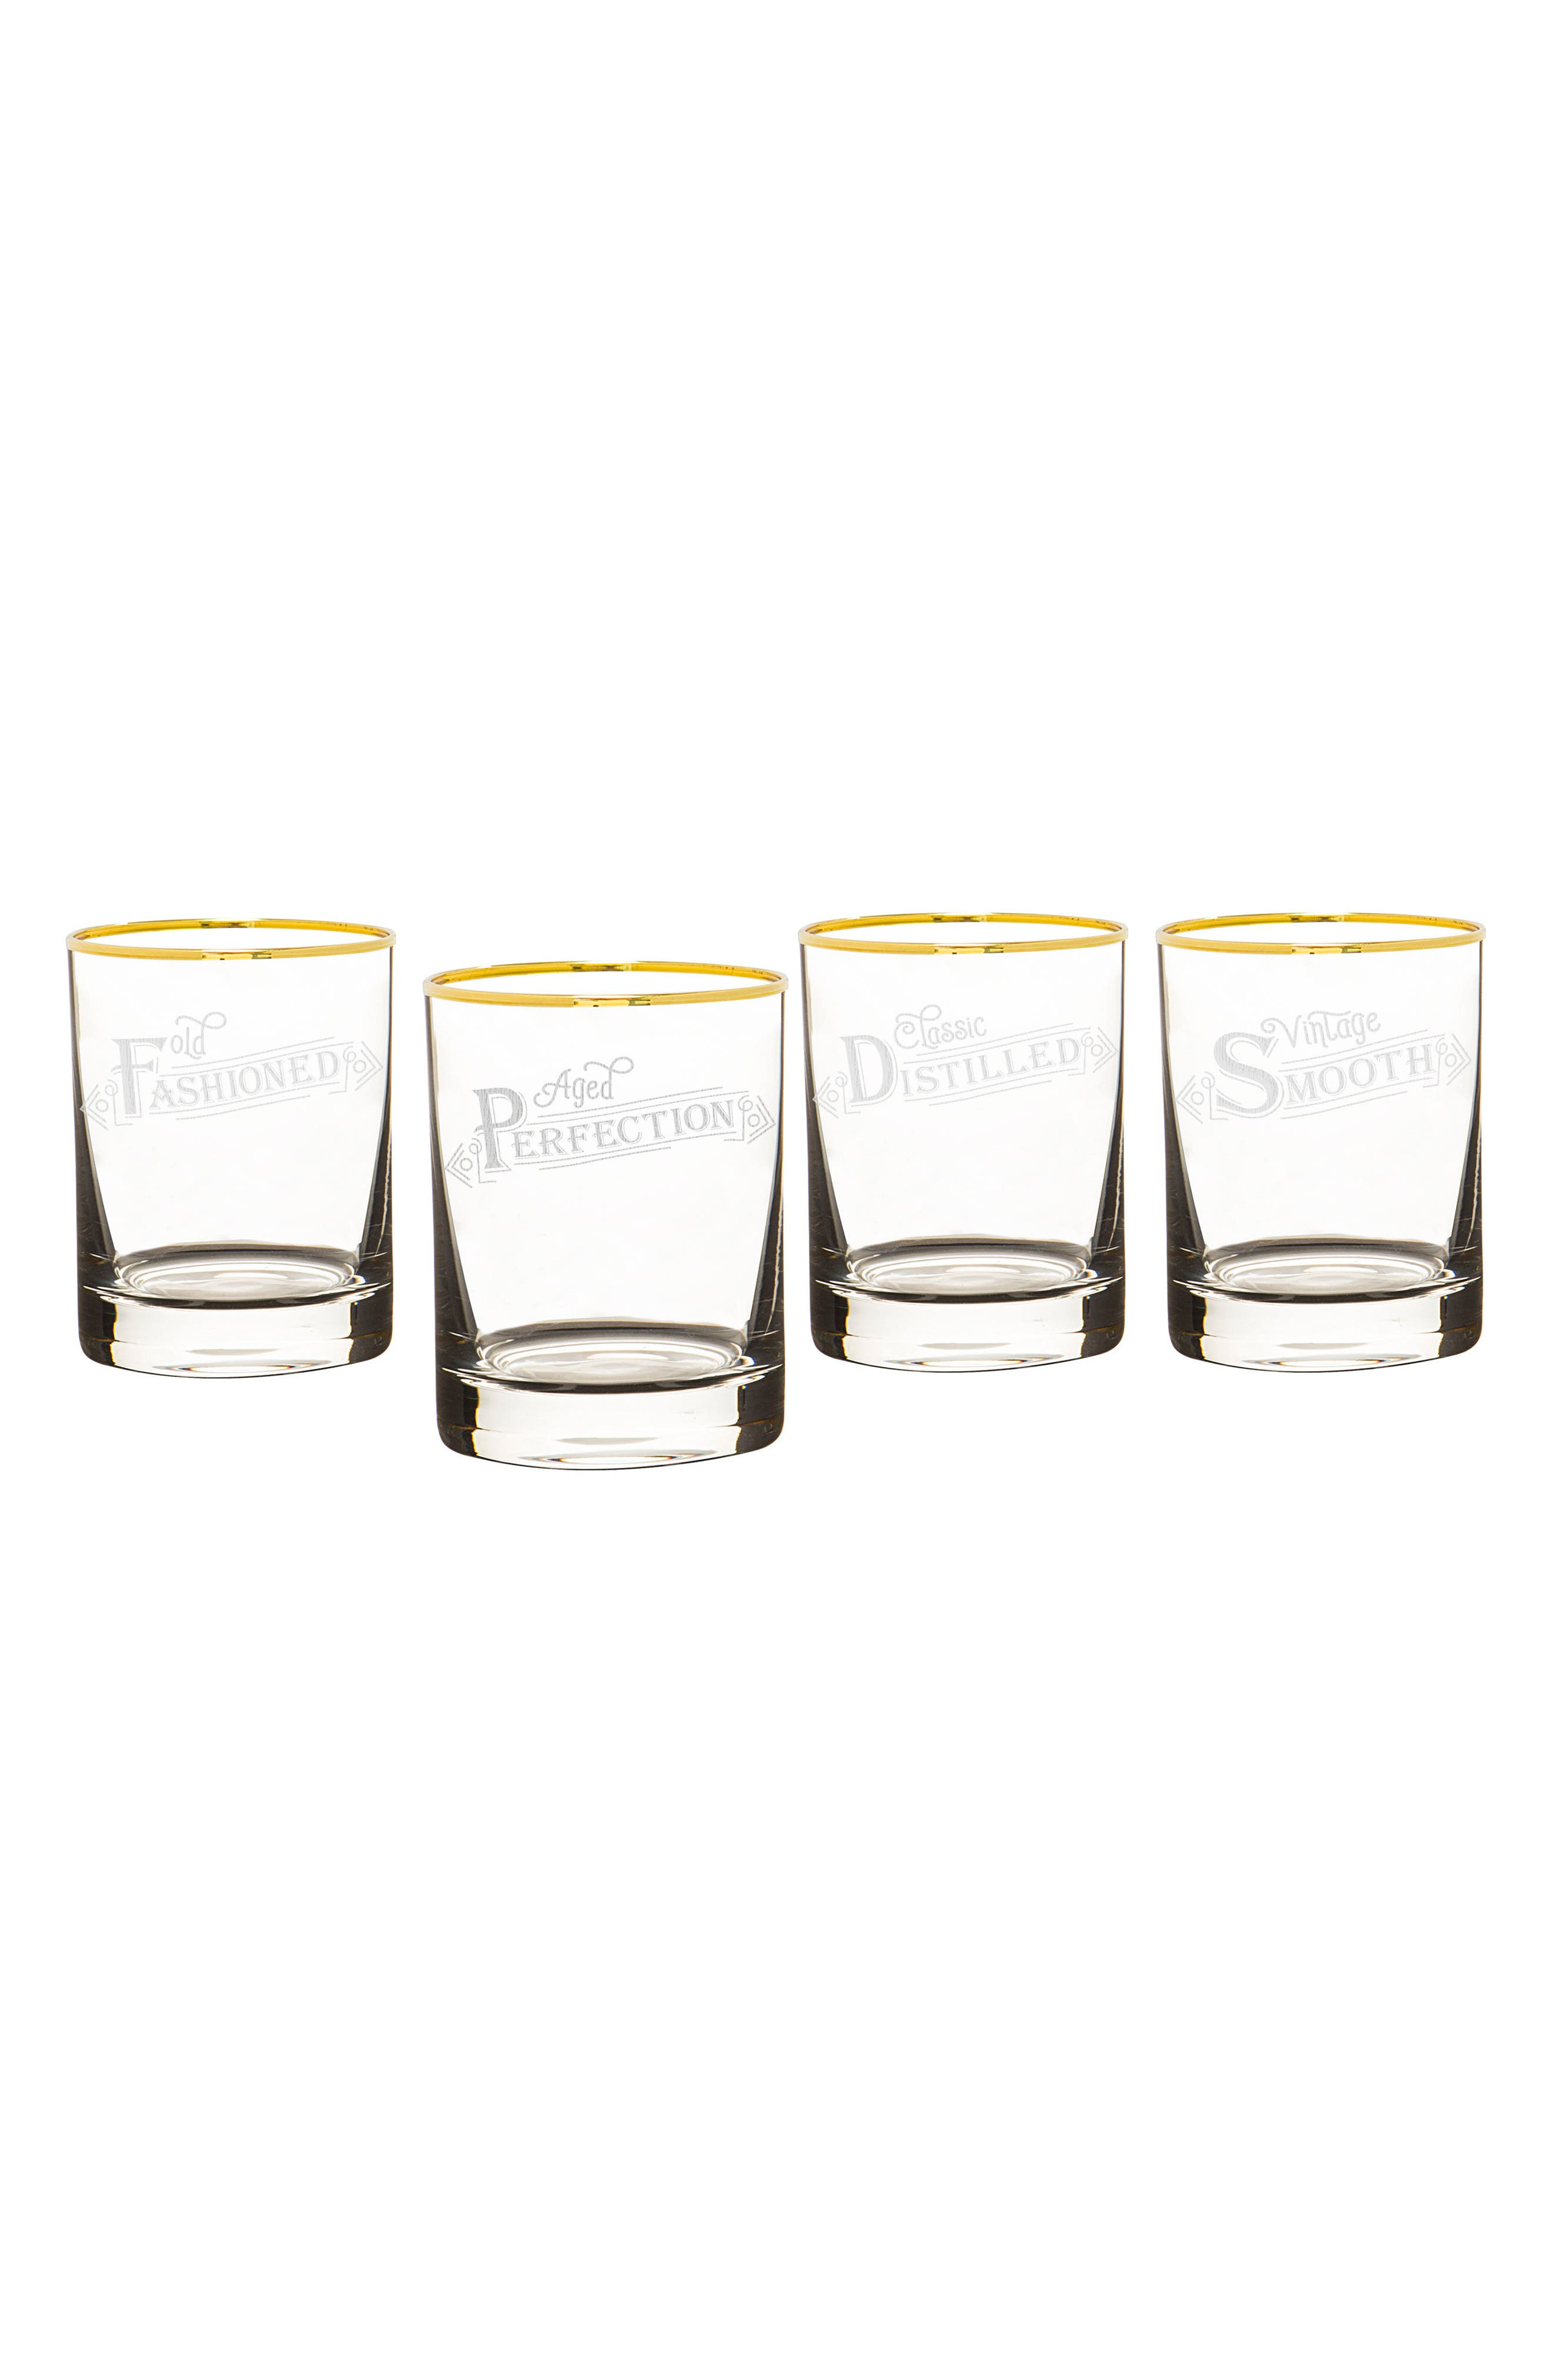 Set of 4 Gold Rim Old Fashioned Whiskey Glasses,                         Main,                         color, Gold